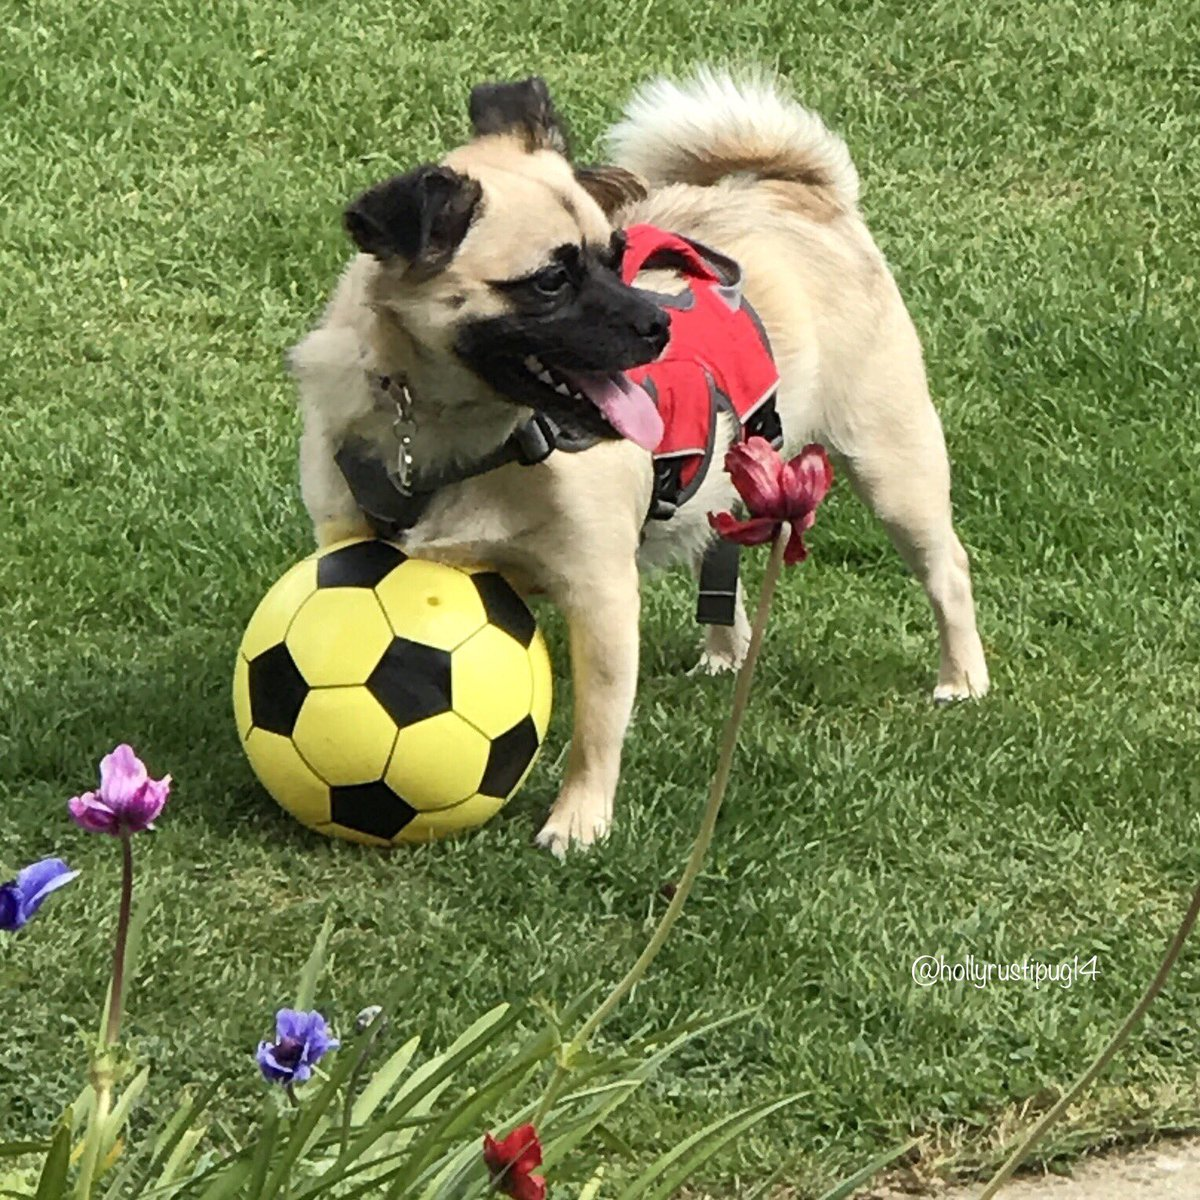 Happy #ThrowbackThursday everyone! Have a wonderful day! April 2017 - Playing football in Granny and Grandad's garden  #tbt #spring #garden #dogsoftwitter #dogsofinstagram pic.twitter.com/pmlo4glQgX